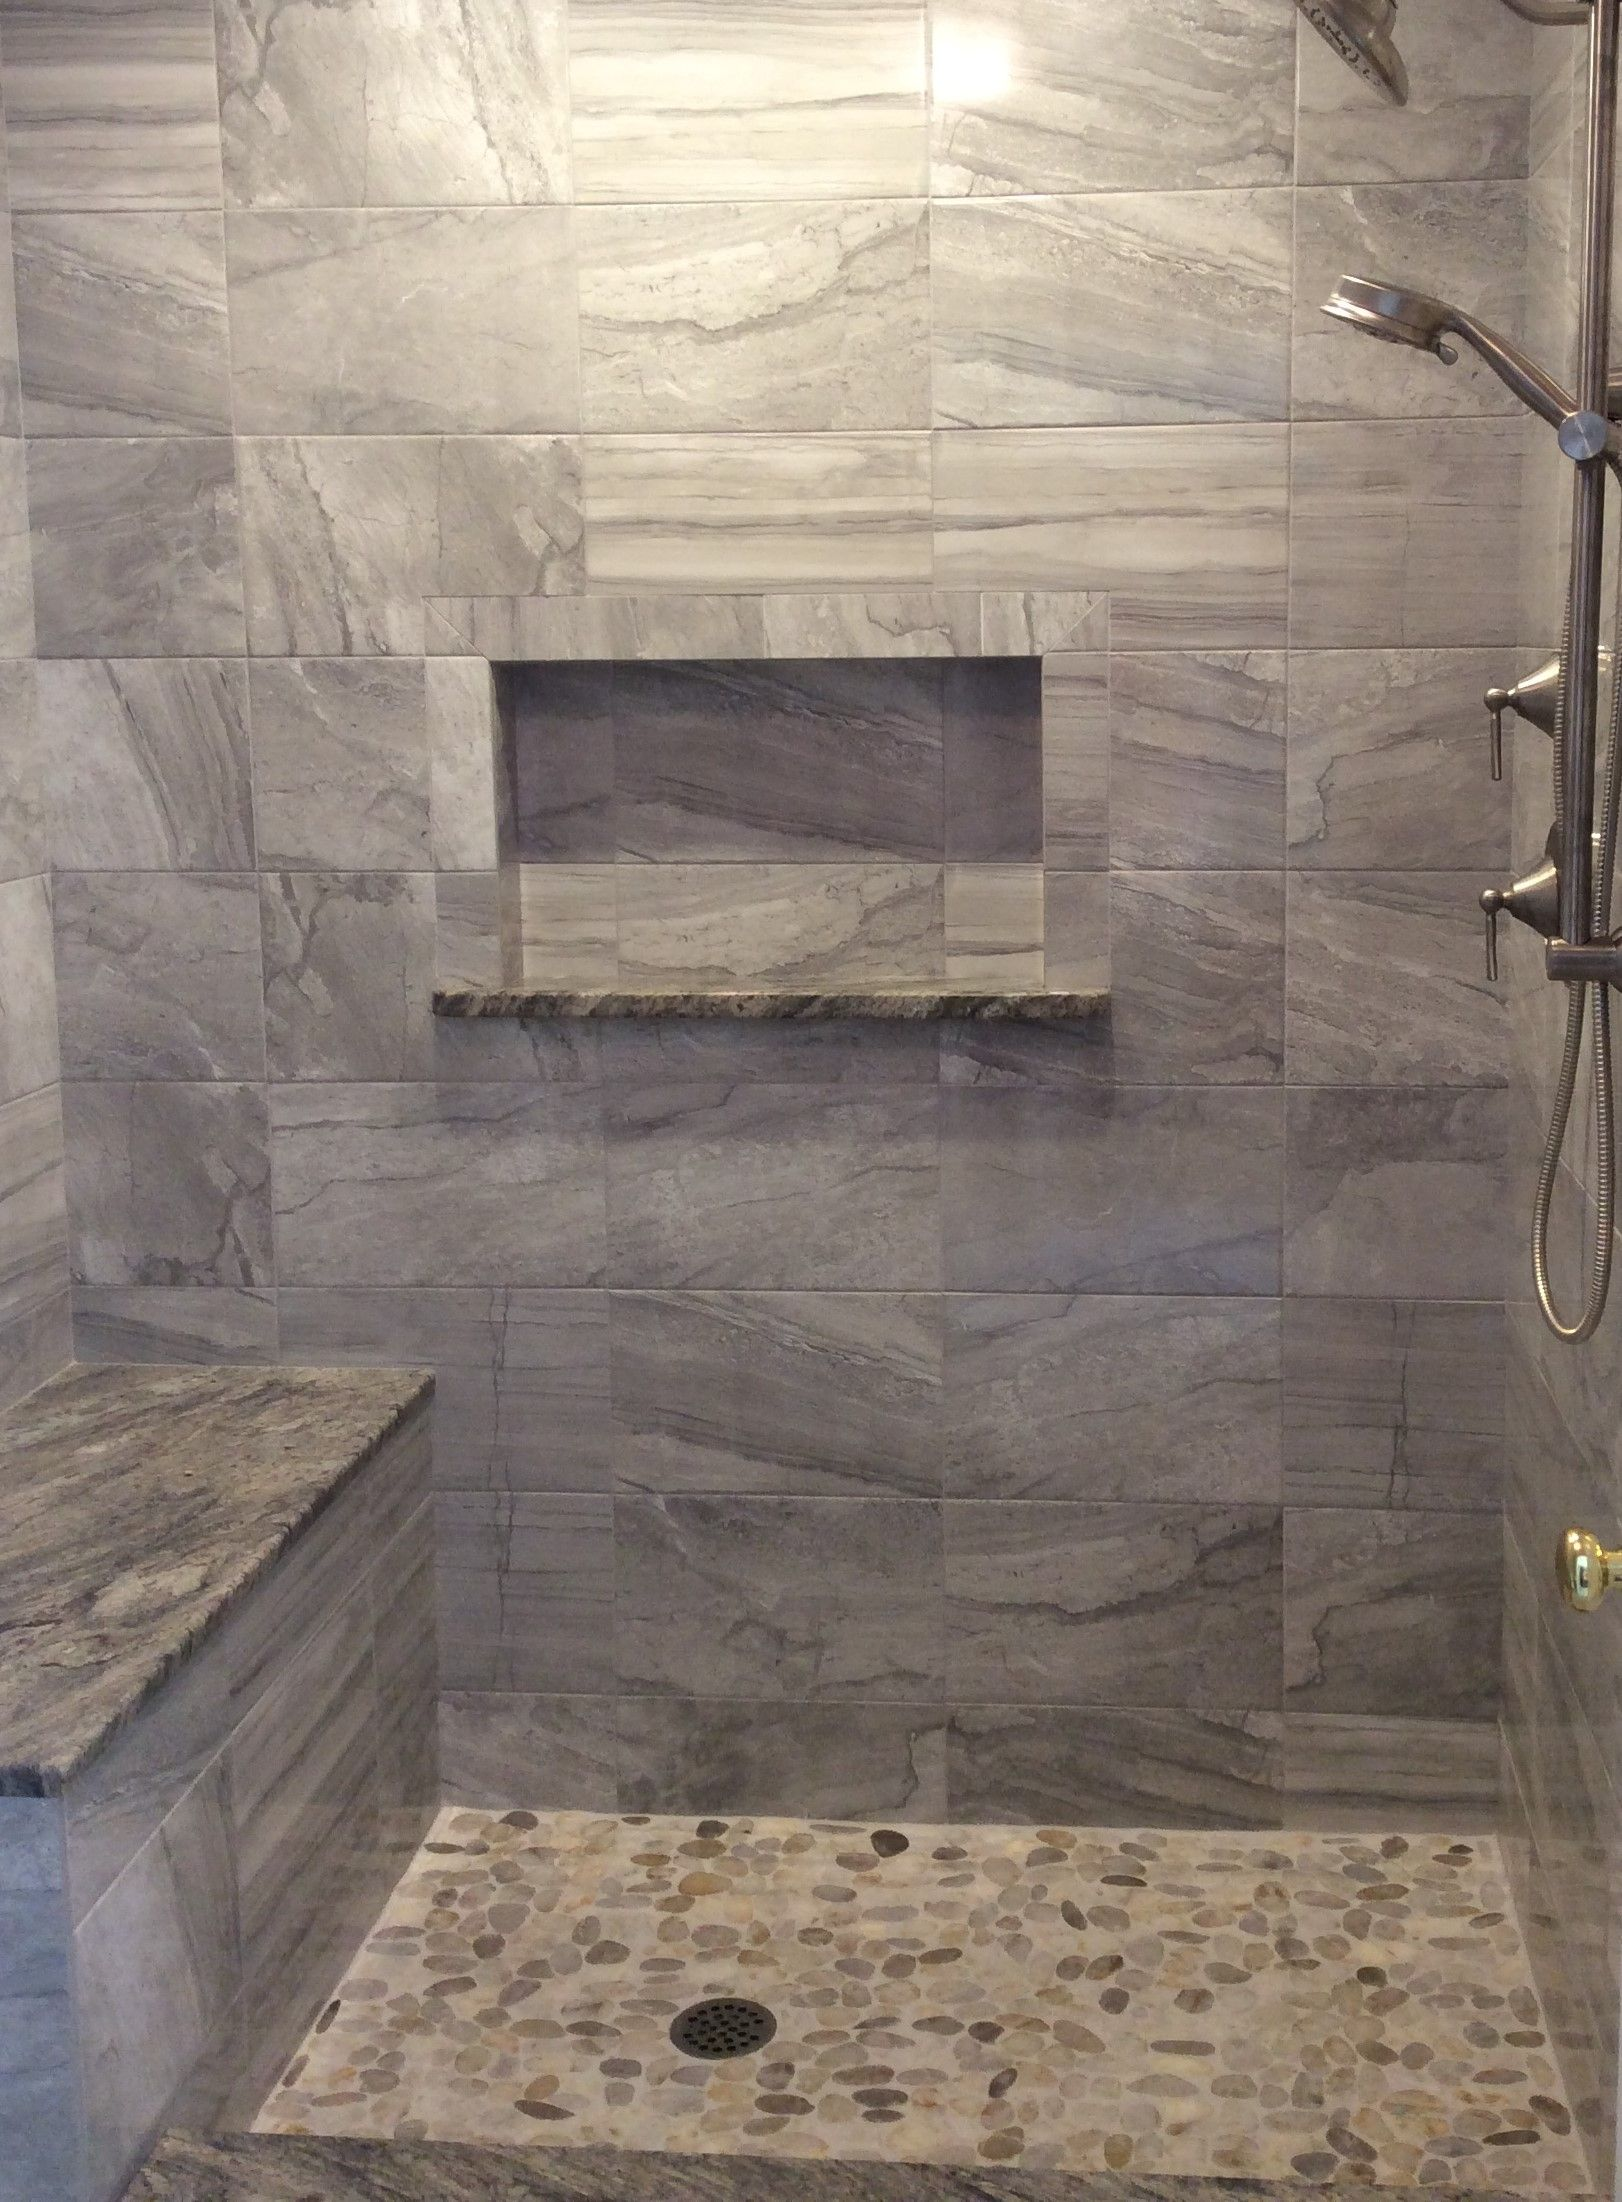 Pebble Rock Shower Floor And Tile In Greys And Beige 12x24 Give This Shower A Relaxing Feel Small Bedroom Remodel Pebble Shower Floor Lake House Bathroom